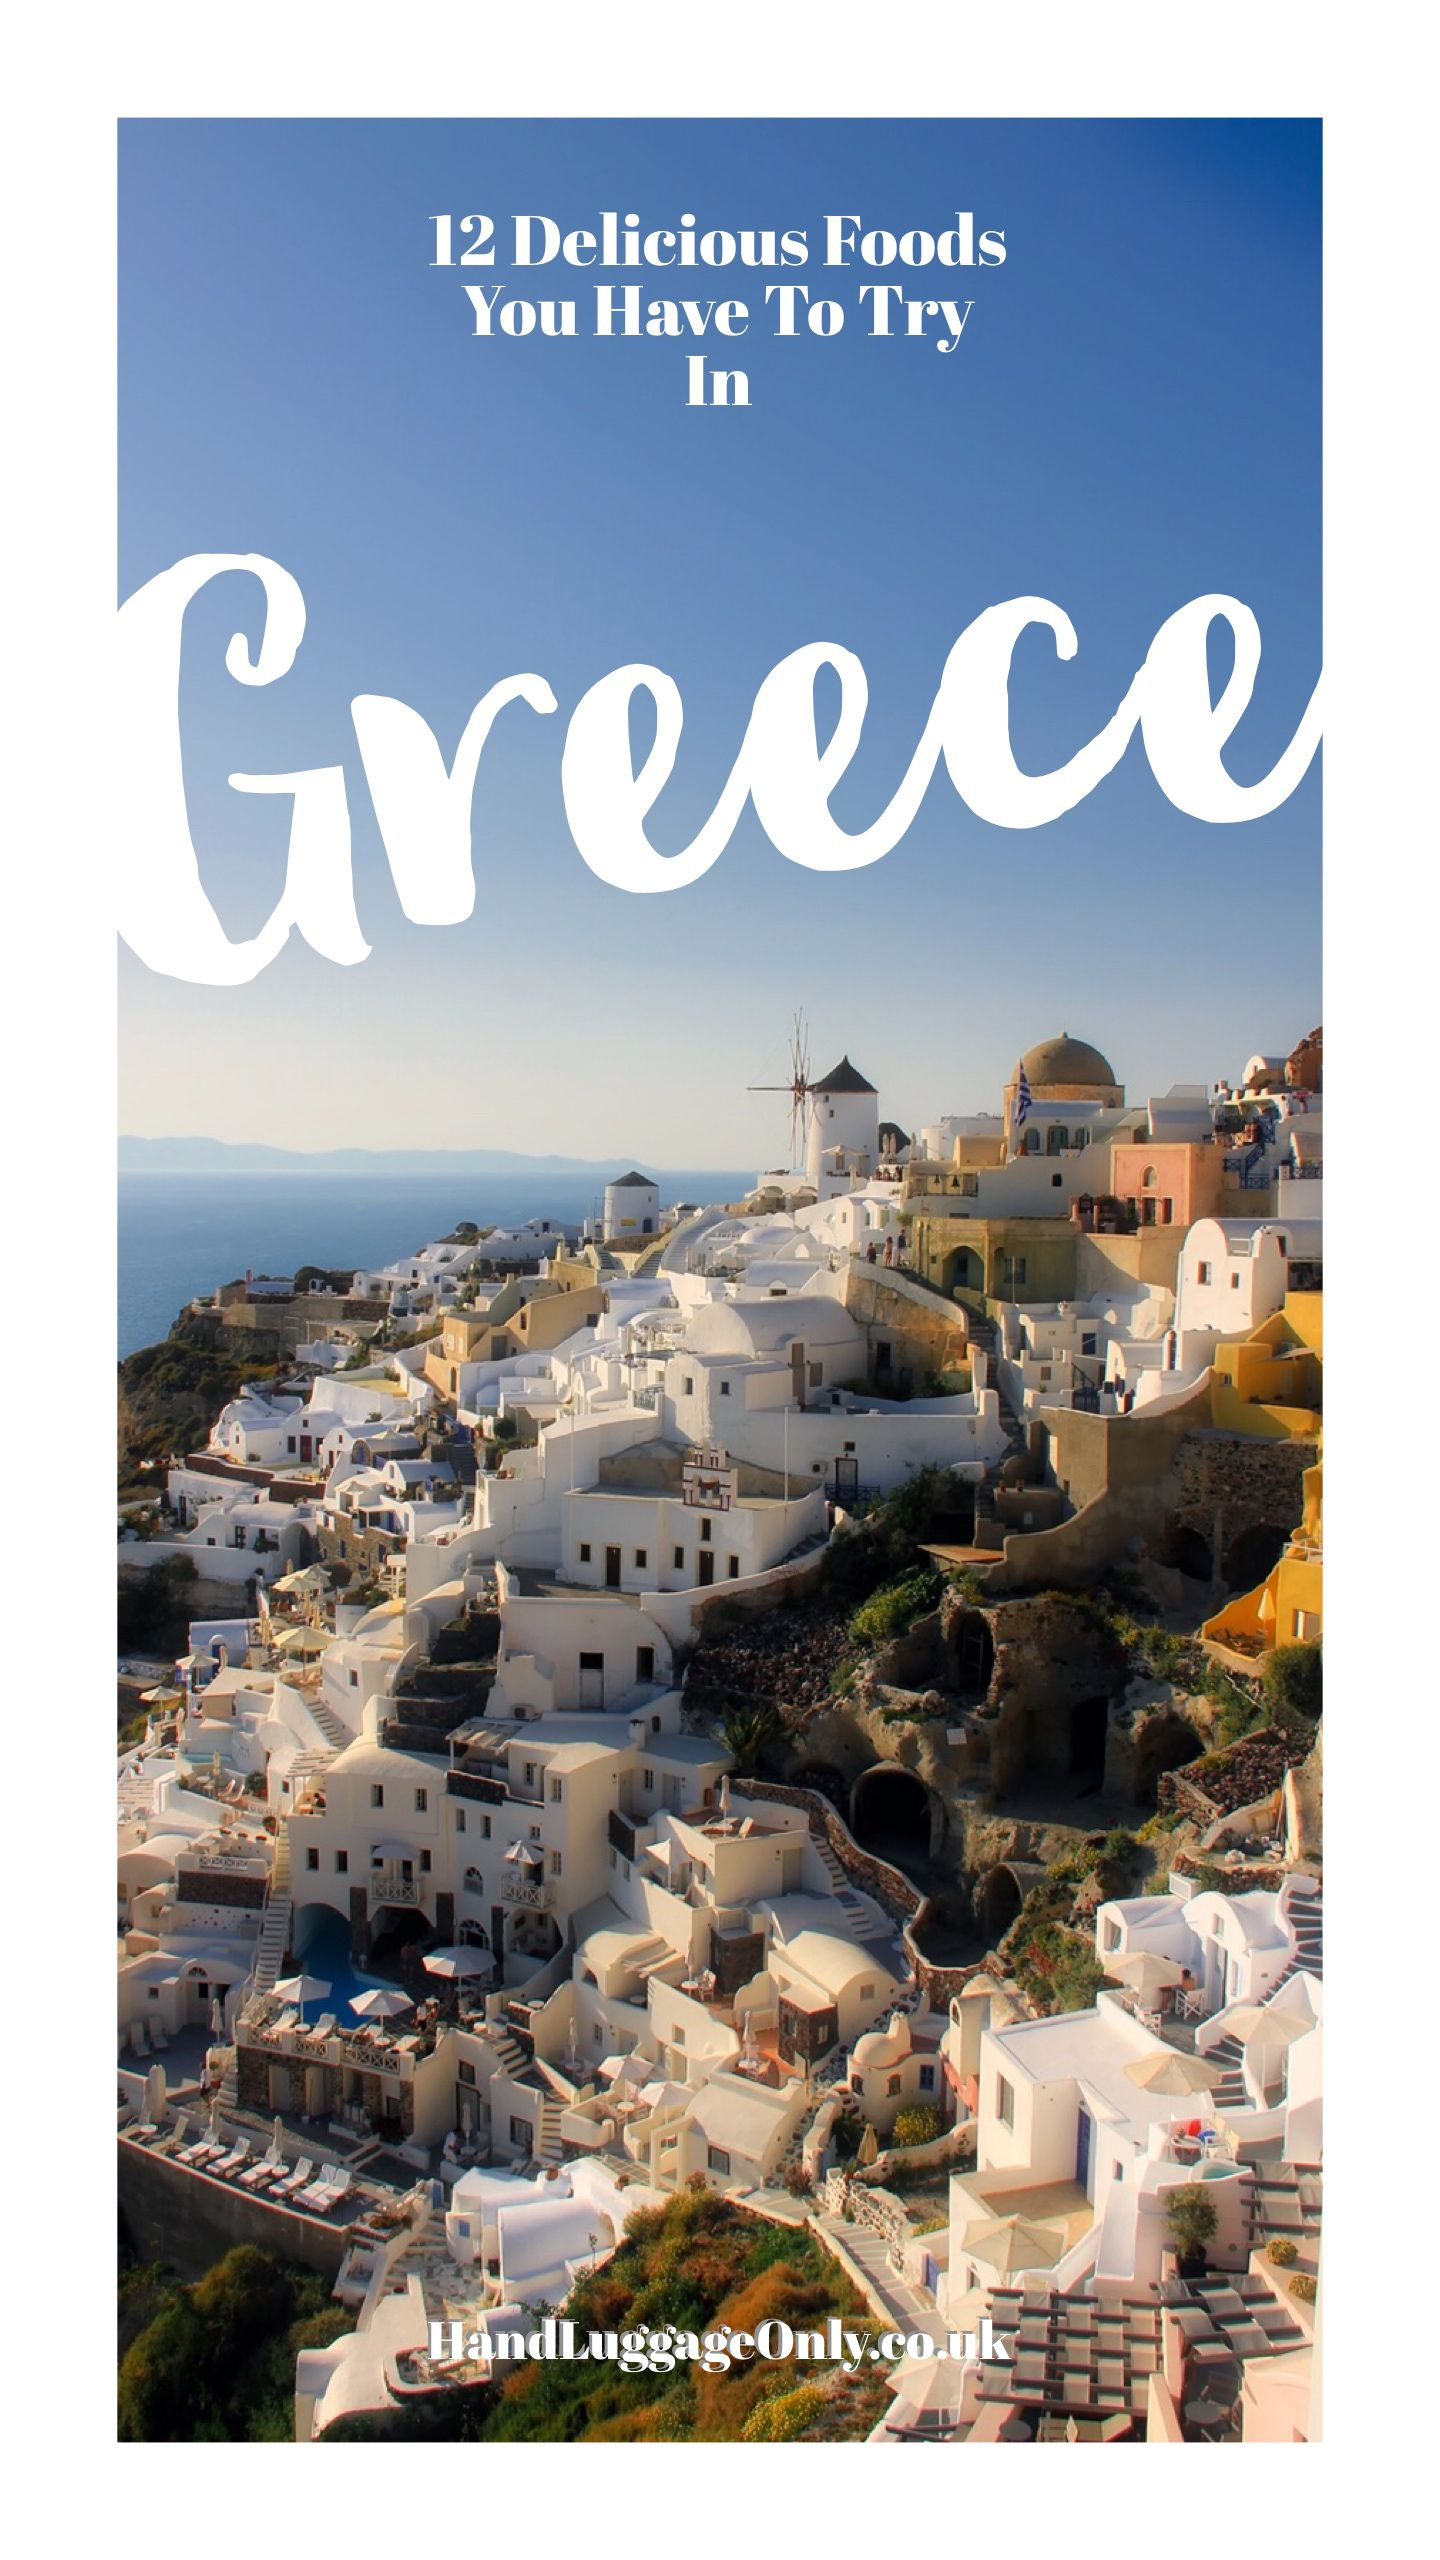 12 Delicious Foods You Have To Eat In Greece (13)